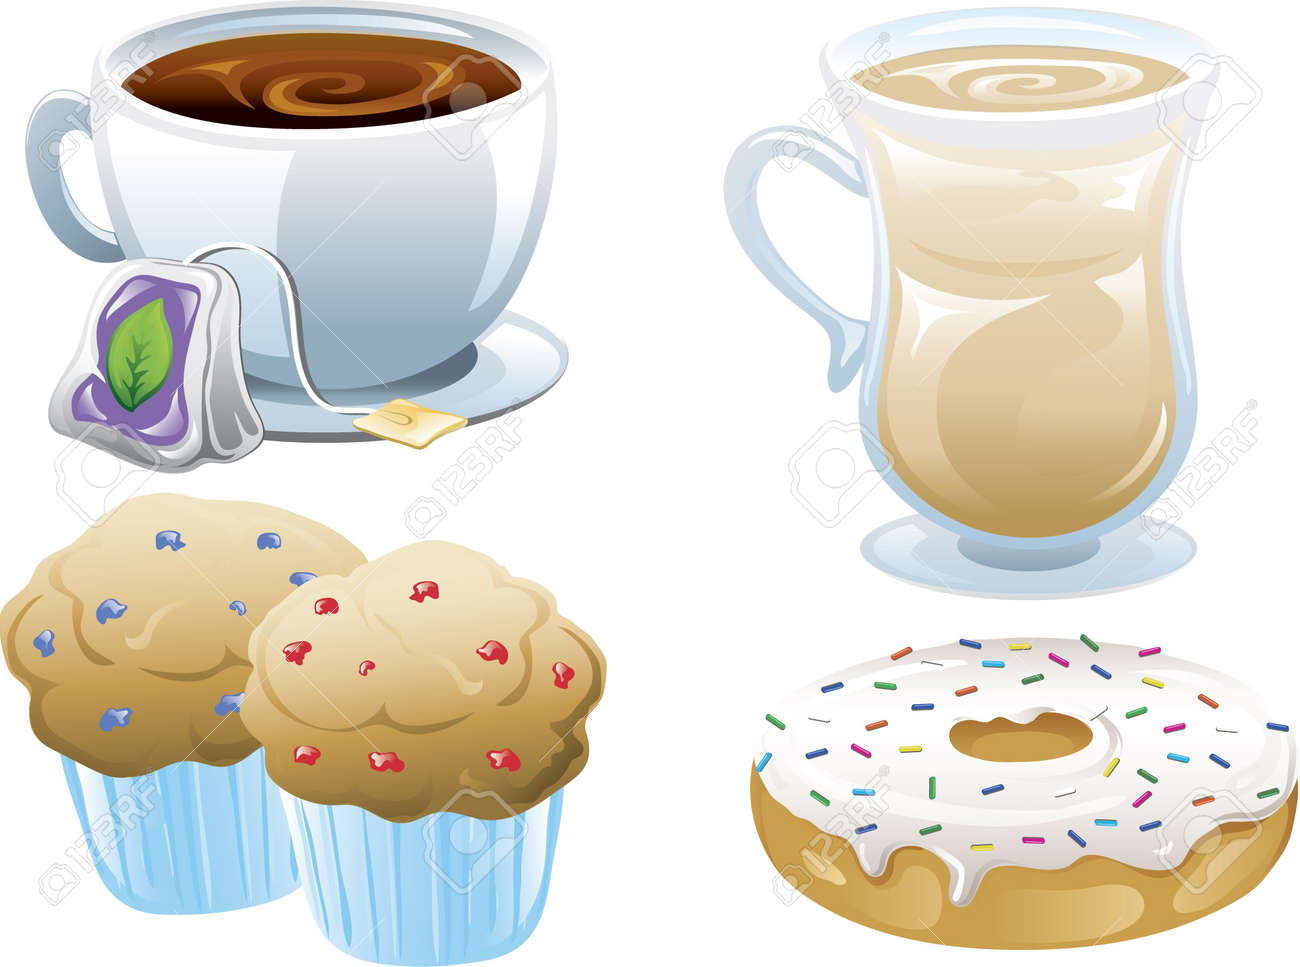 Illustrations of four different cafe food icons, iced coffee, tea, muffins and a doughnut. Stock Vector - 7346872